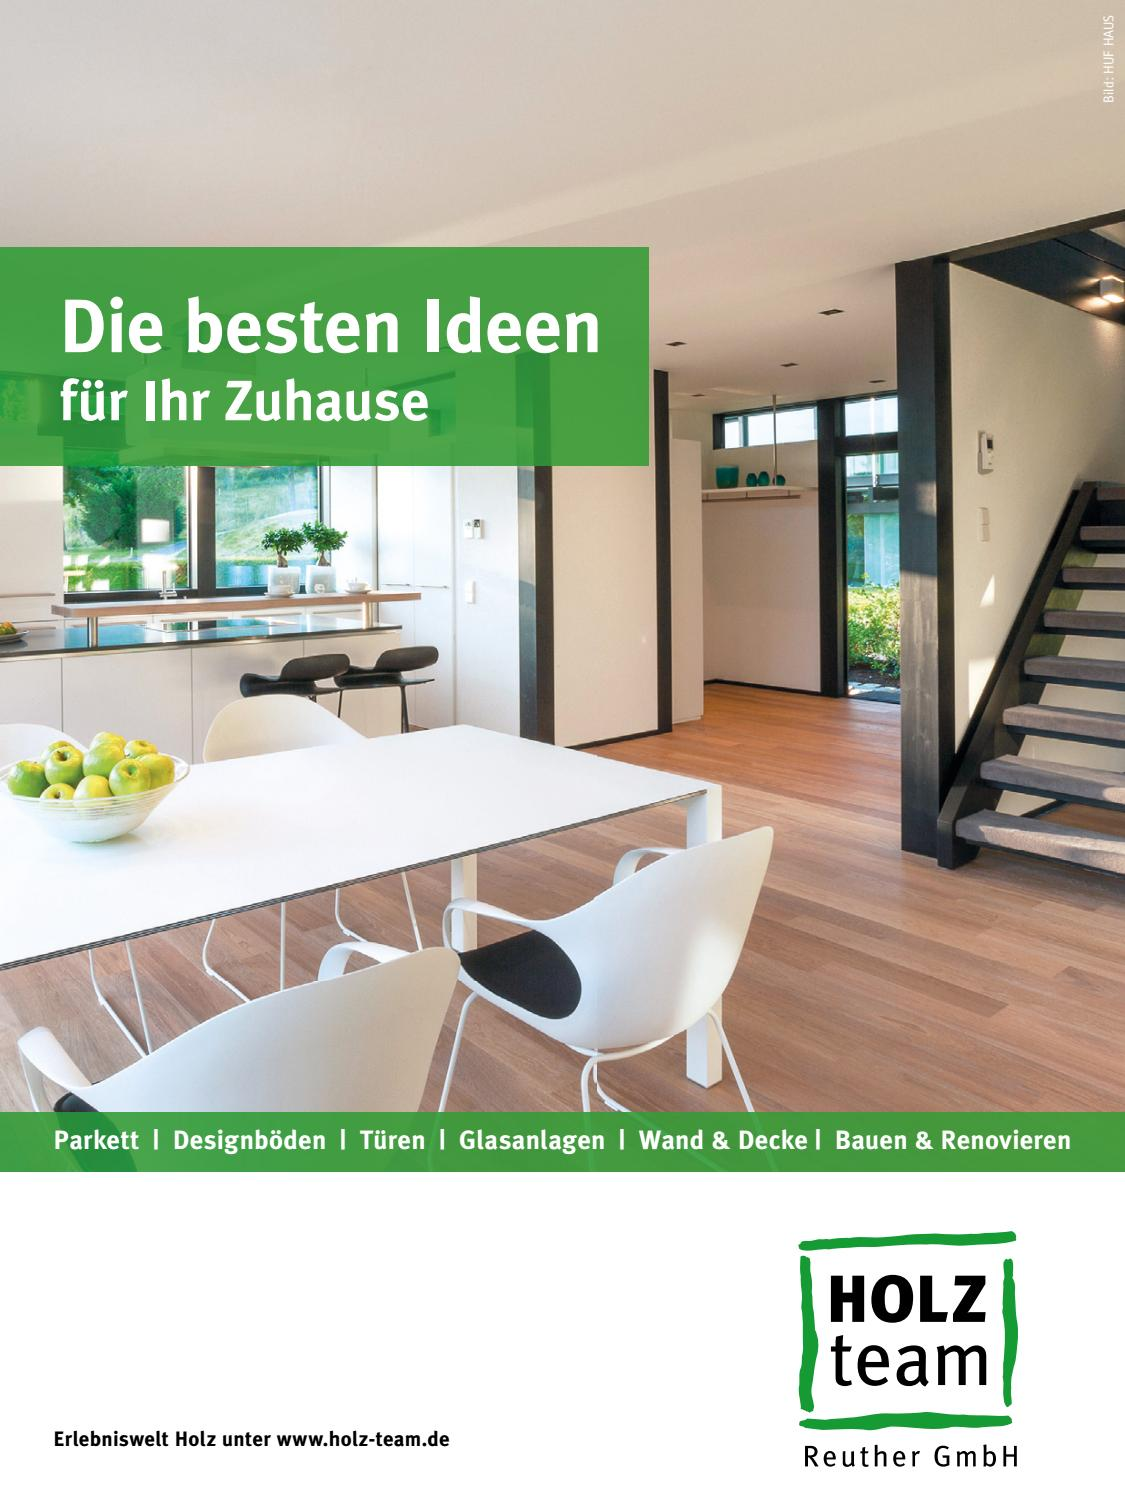 Wandverkleidung Holz Jugendstil Holz Team Reuther Indoor 2017 By Kaiser Design Issuu